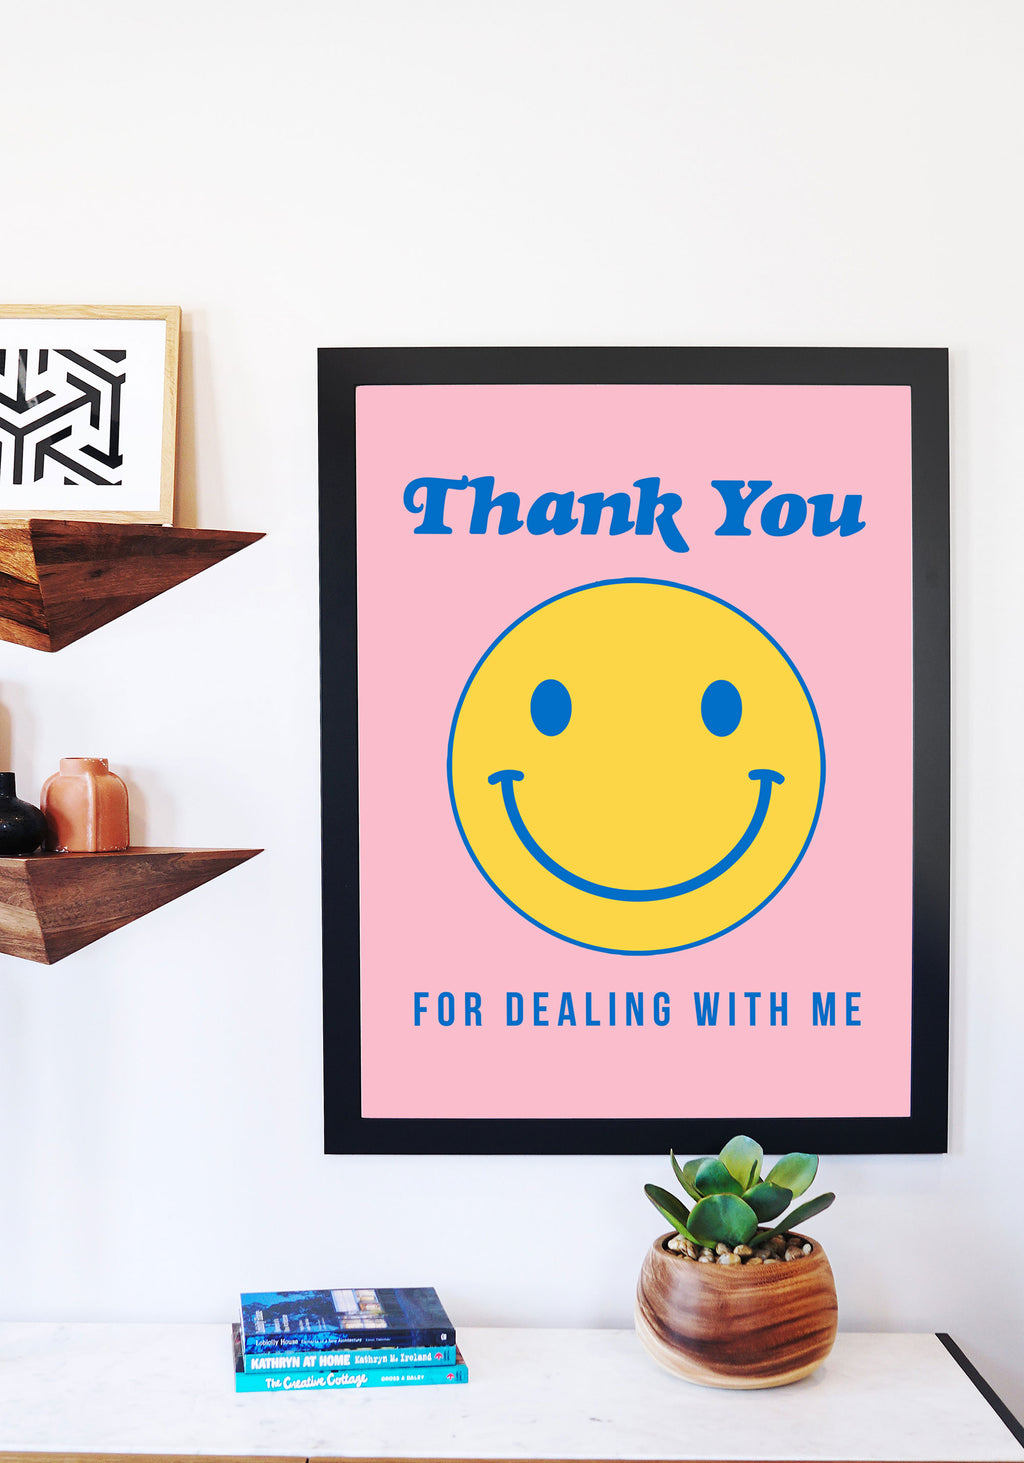 Thank You Smiley Poster Print / 18x24 wall art prints decor / vintage retro 80s / smile grocery bag / yellow gold thanks happy